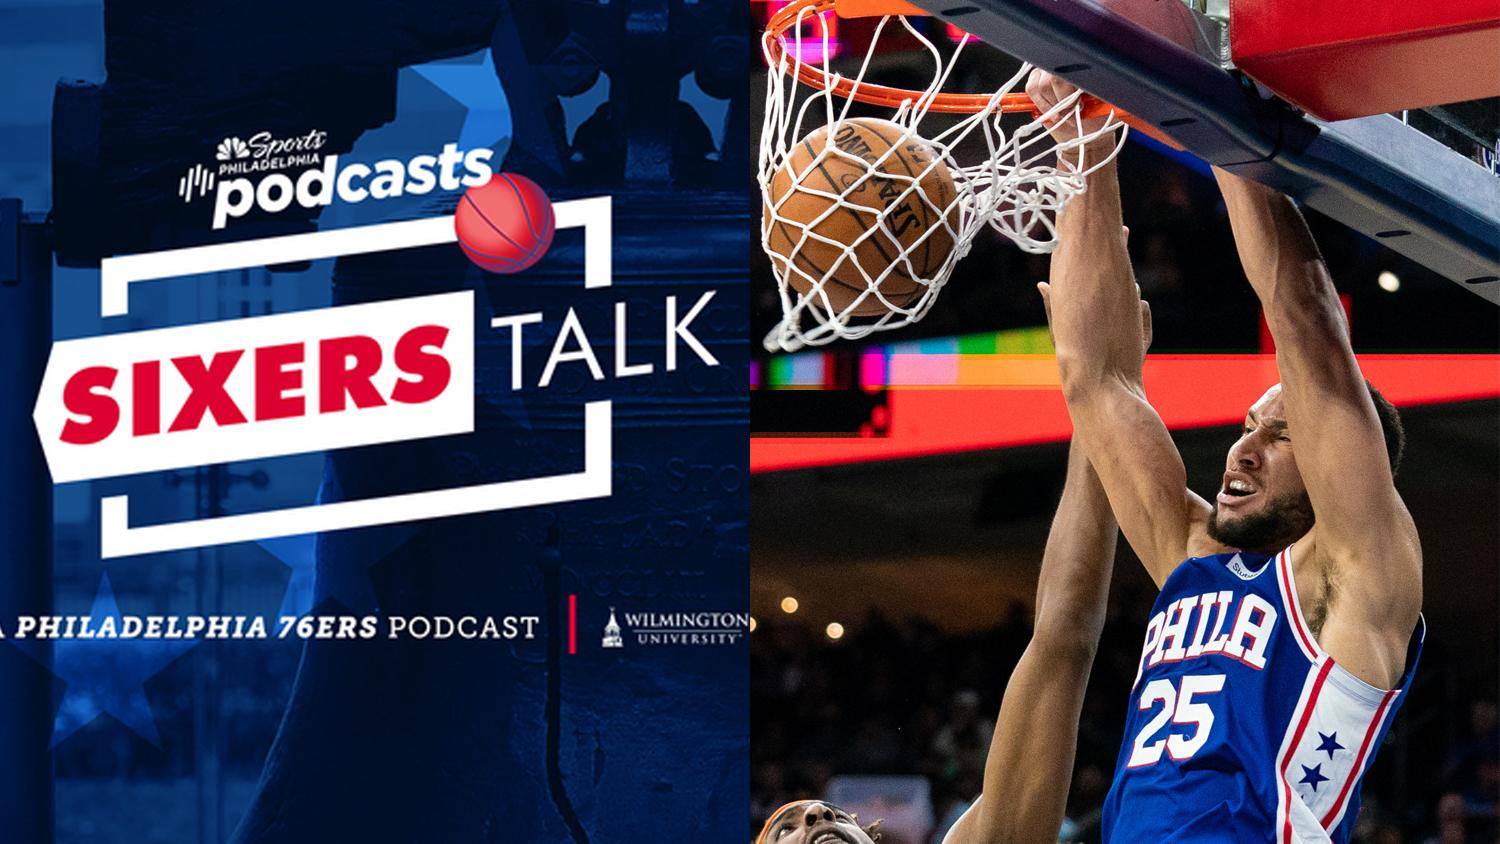 Sixers Talk podcast: Ben Simmons hit a 3 ... now what?